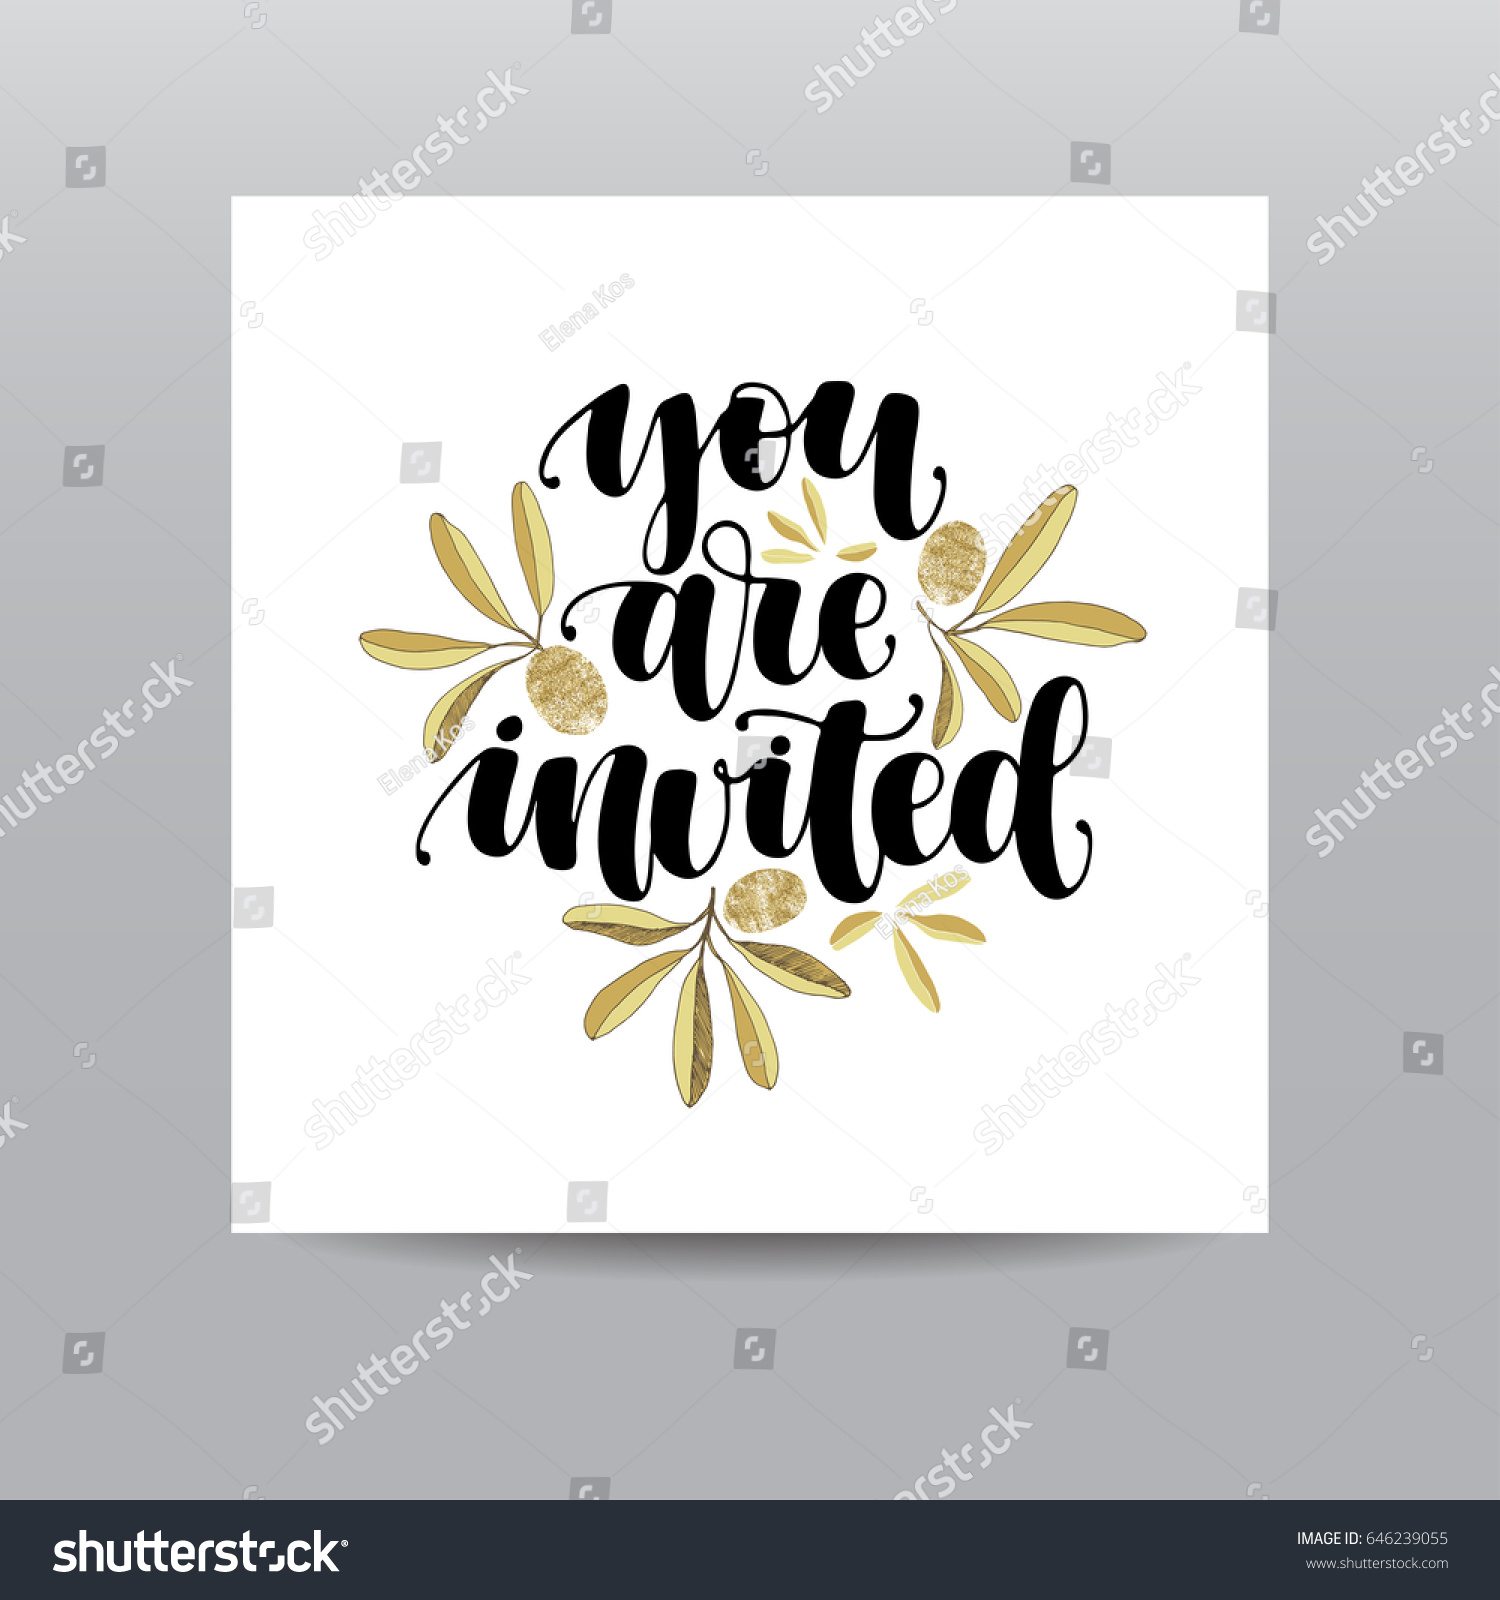 You Invited Handwritten Calligraphy Phrase Gold Stock Vector ...